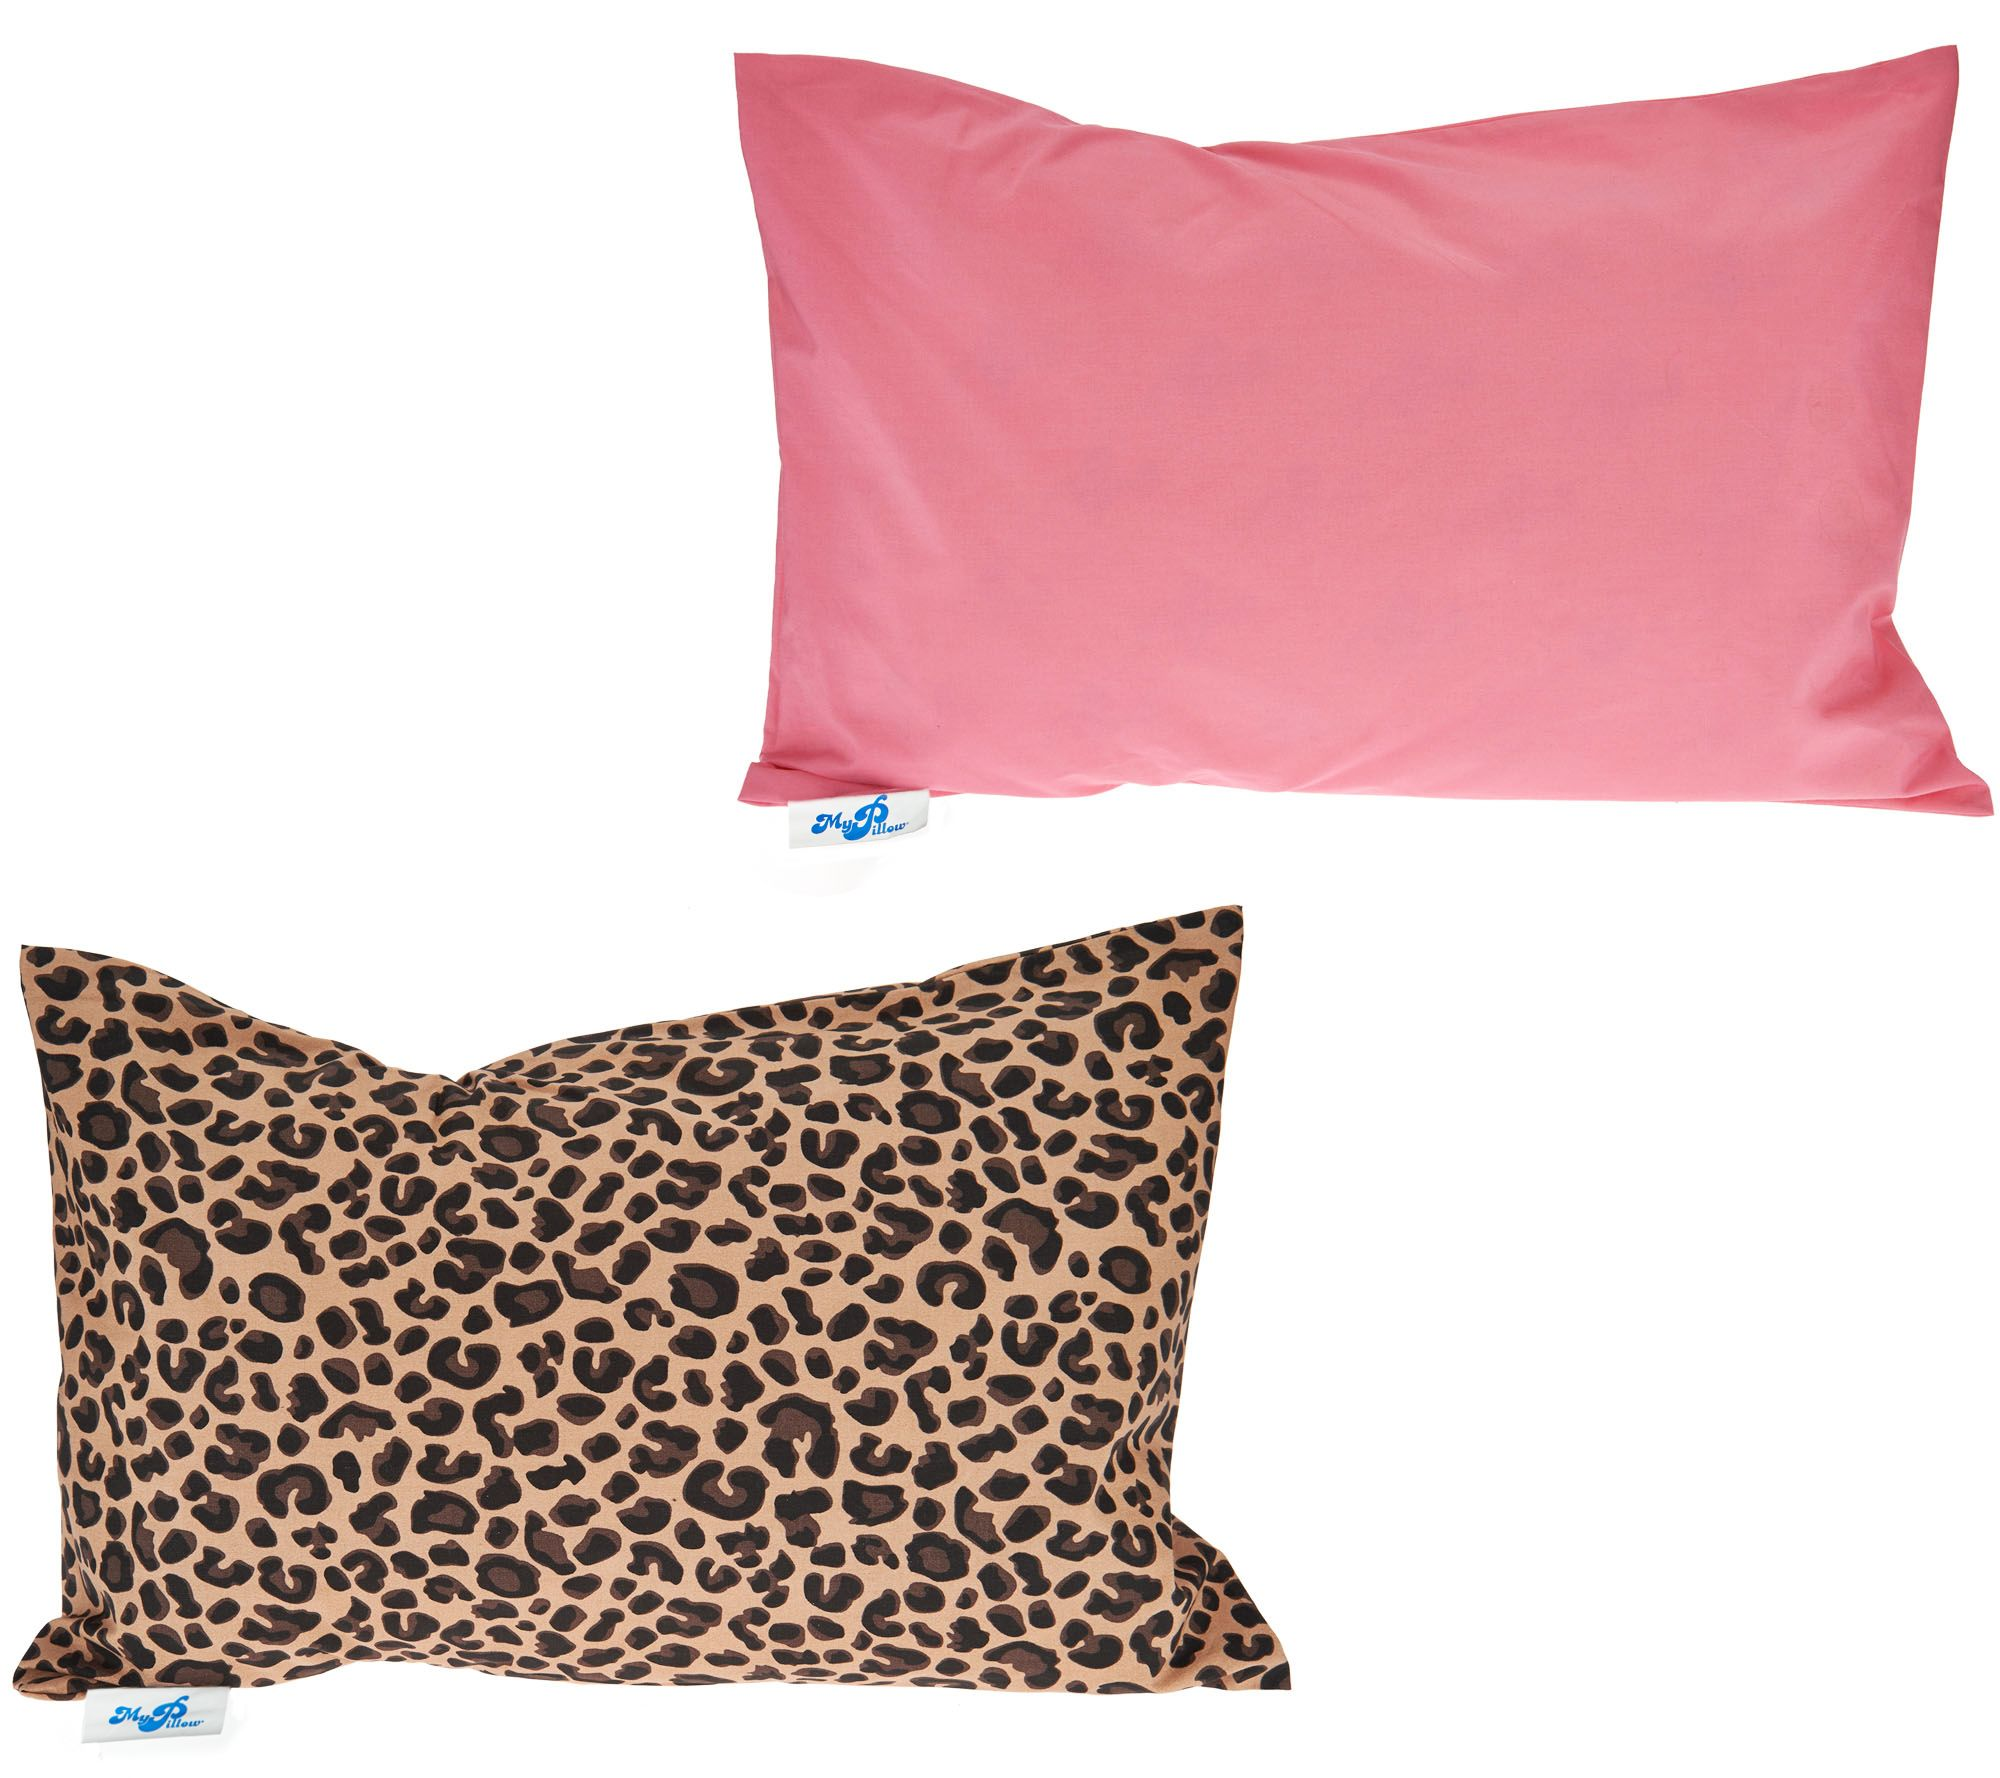 MyPillow Roll & Go Set of 2 Pillows with Pattern Options - Page 1 ...